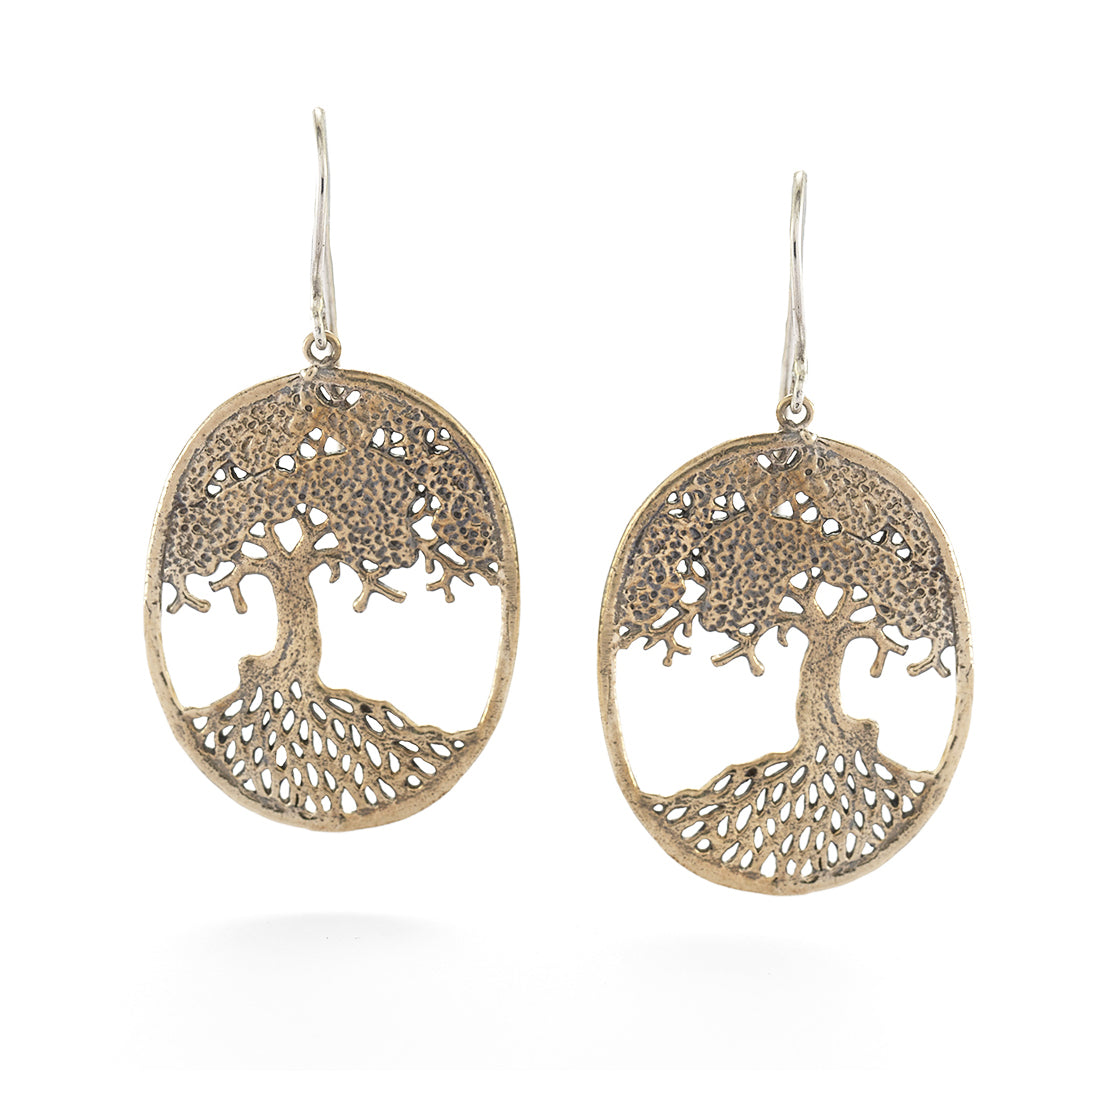 Tree of Life Earrings in Bronze | Handcrafted Jewelry | Made in Bali